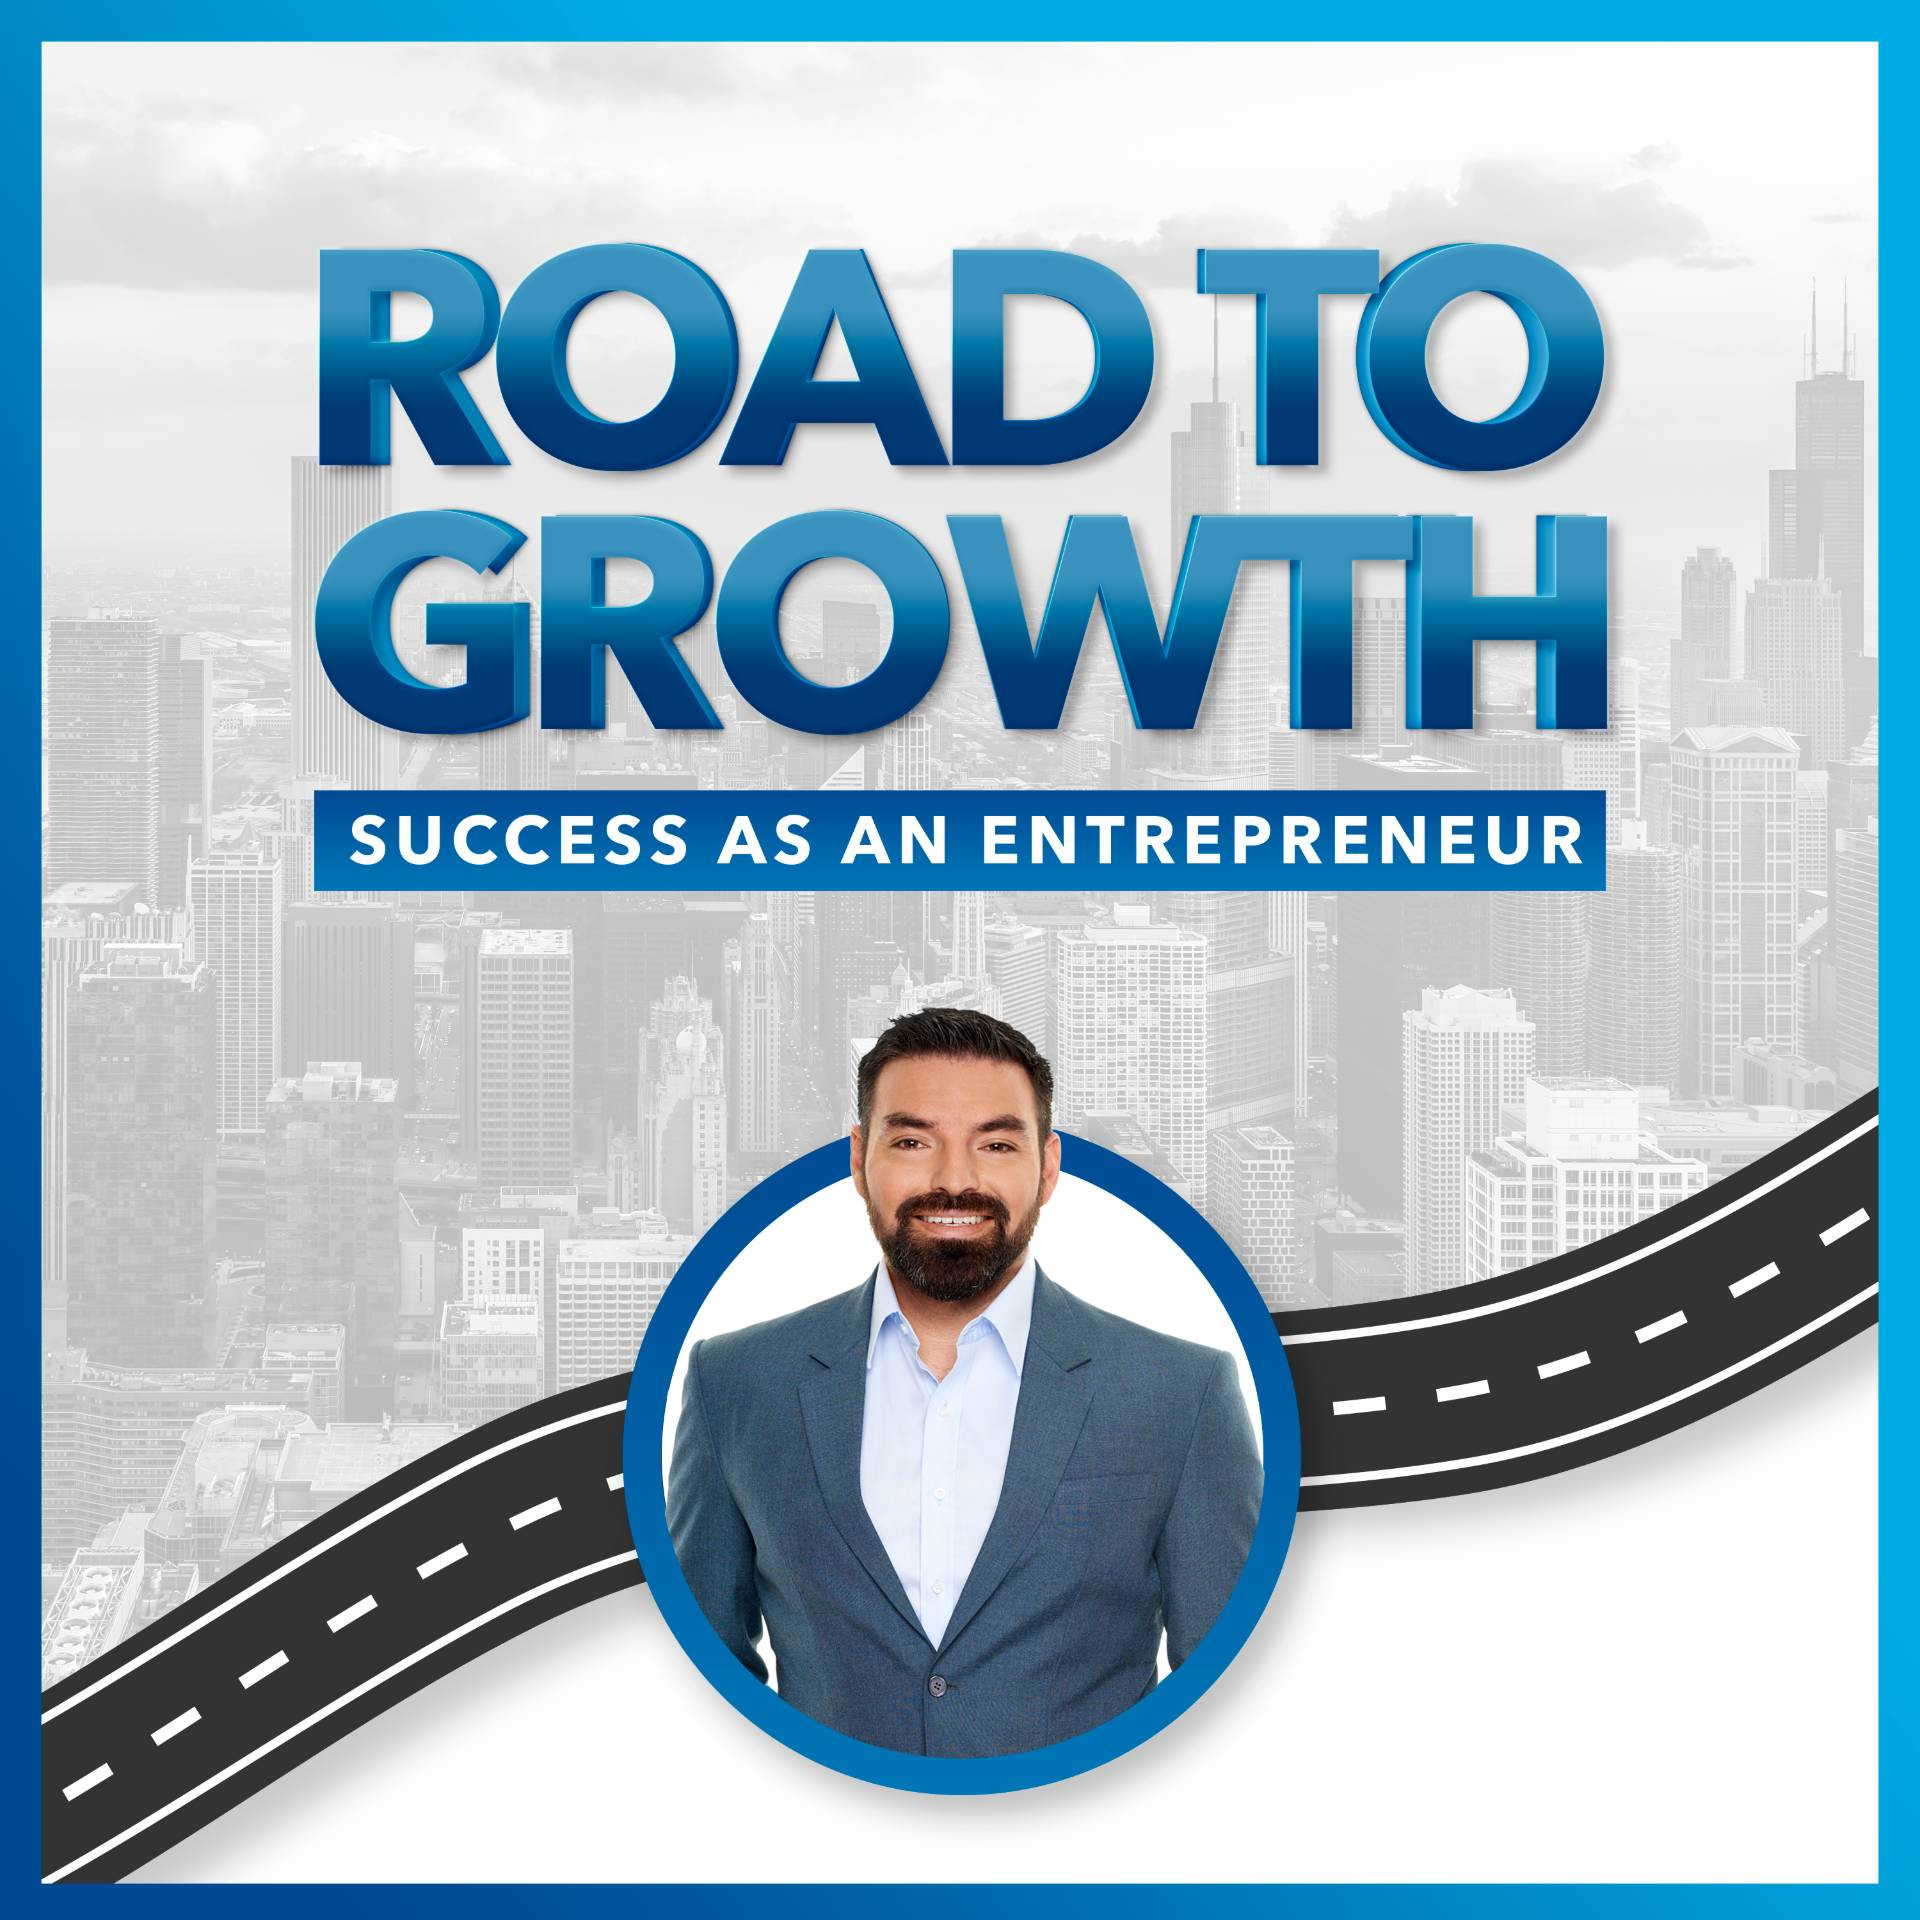 Road to Growth Interview!